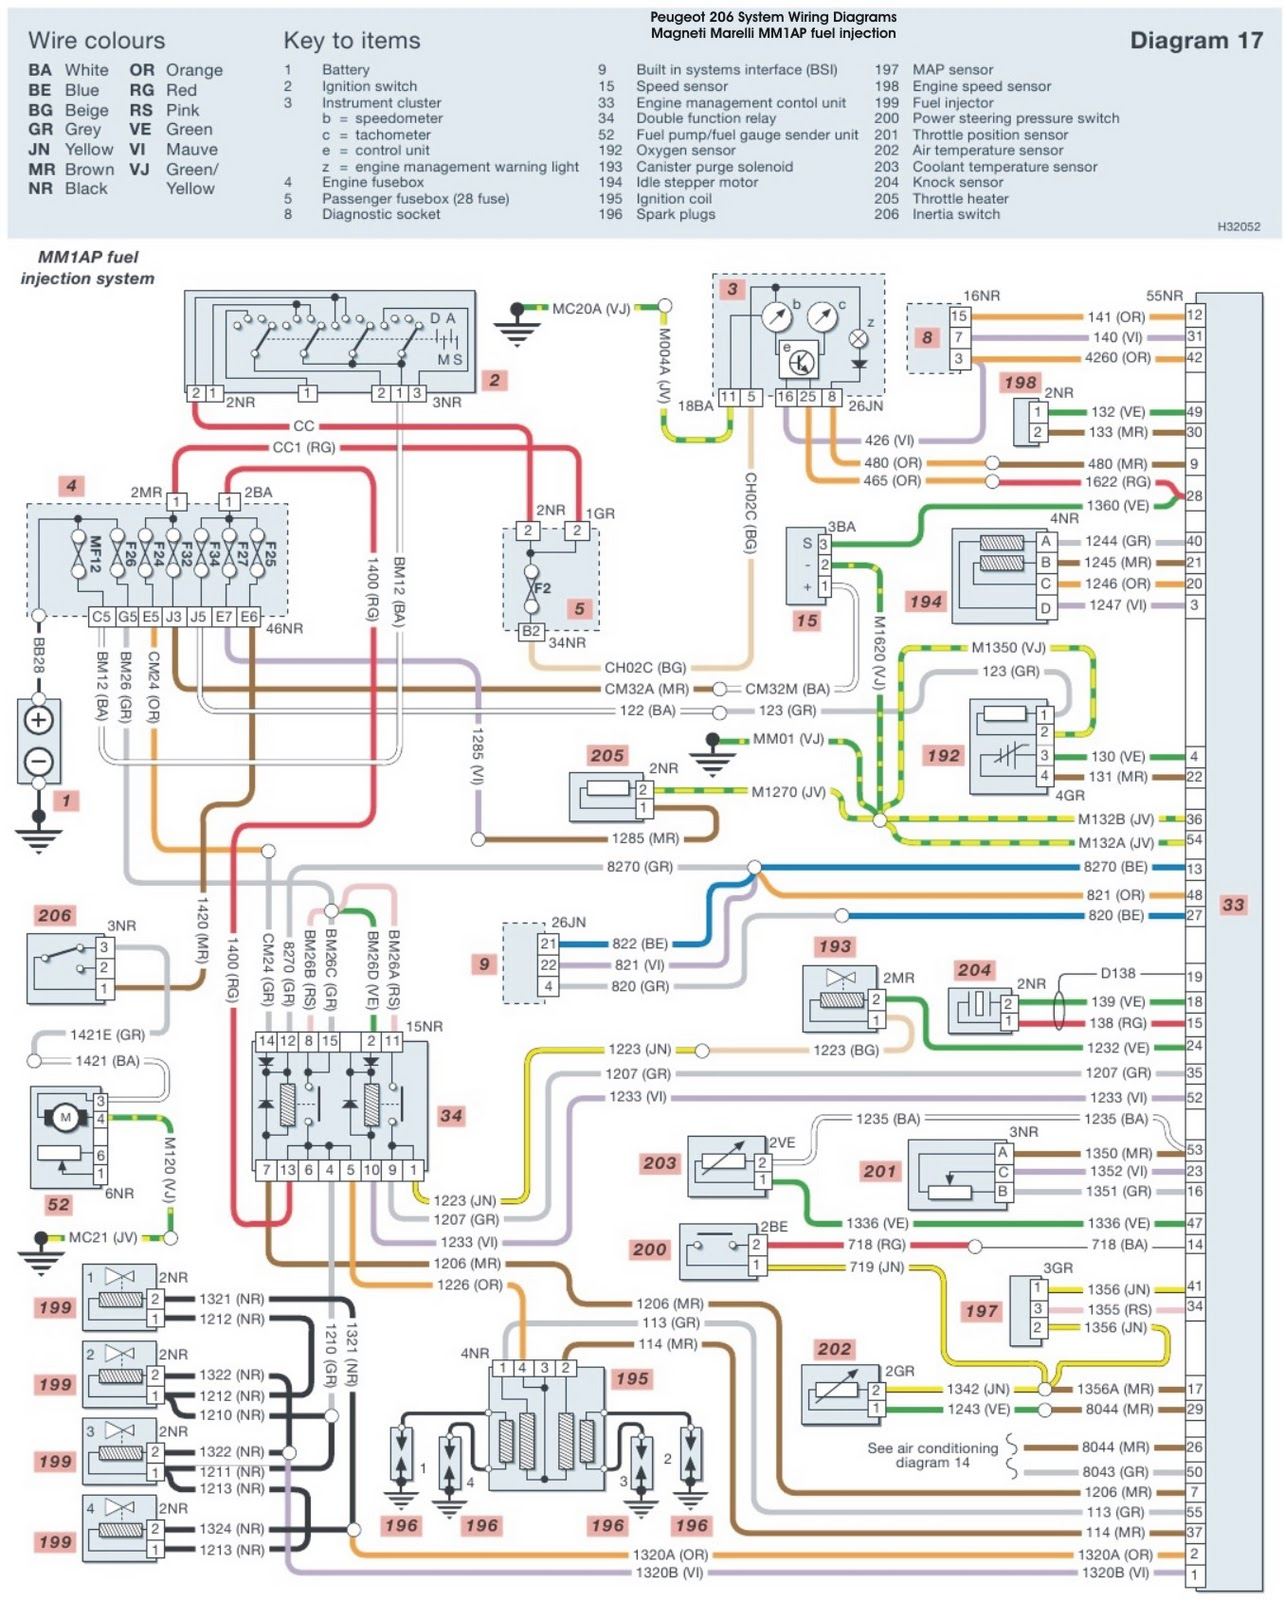 Amazing Peugeot Engine Wiring Diagram Diagram Data Schema Wiring Cloud Staixuggs Outletorg